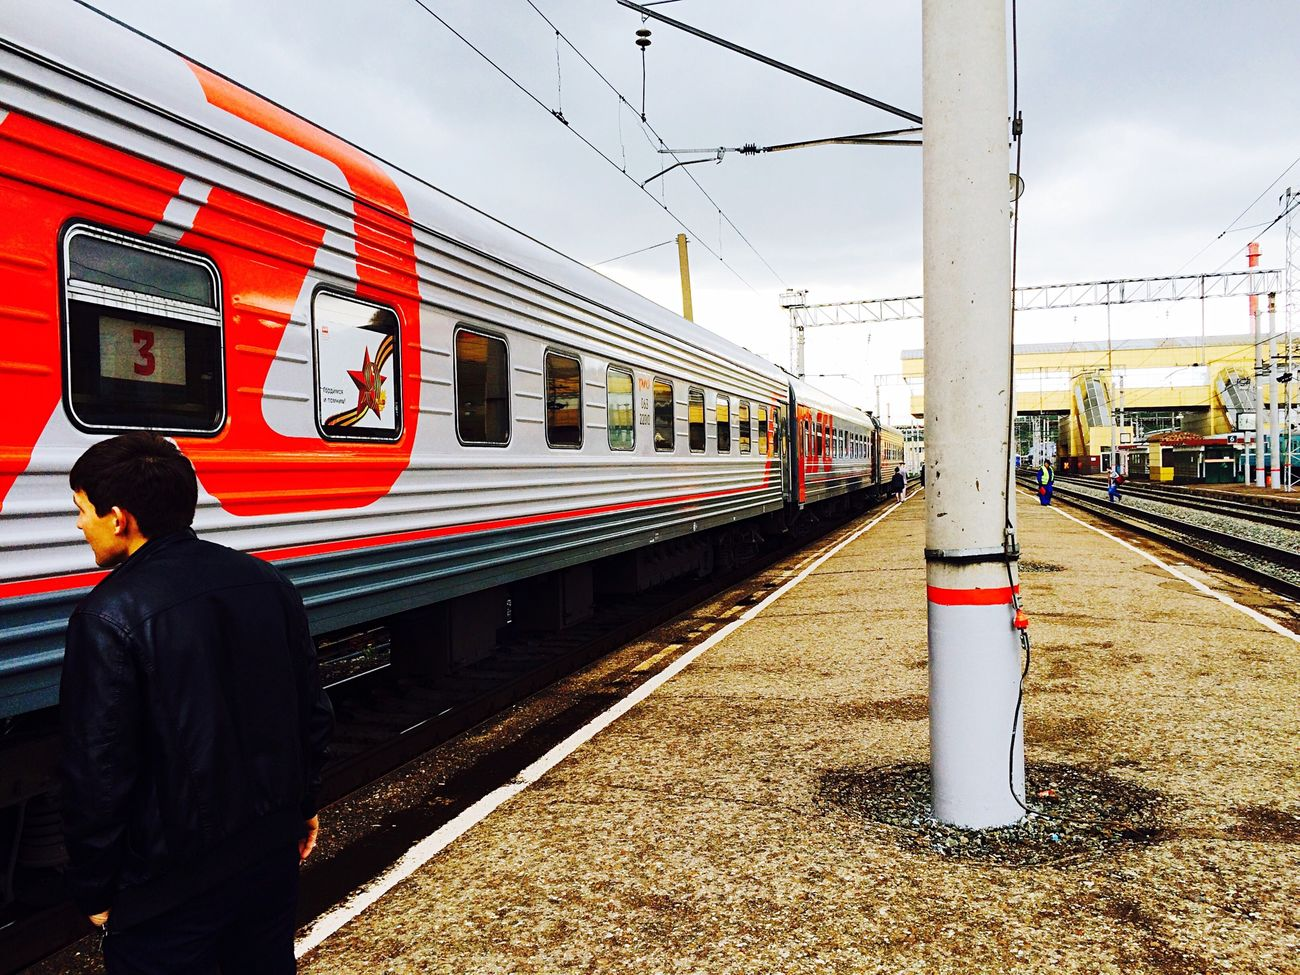 Ufa St.petersburg Rzd Railway Train